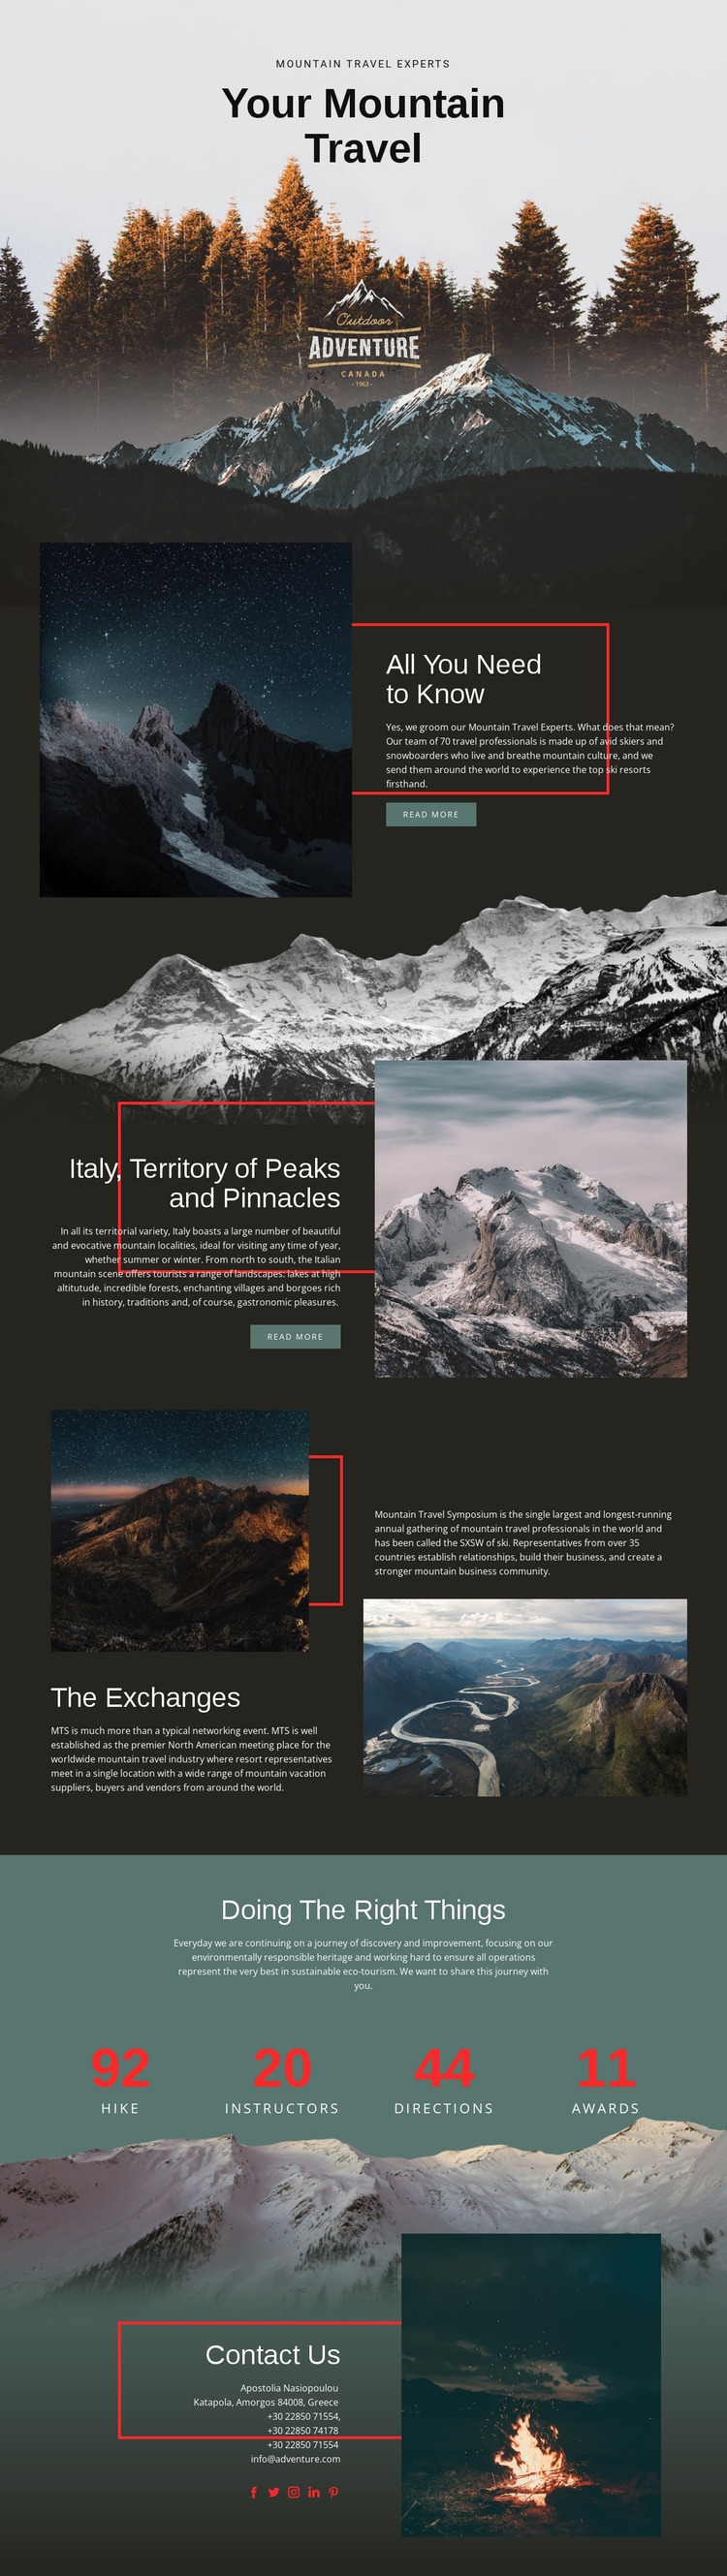 All about mountain travel Website Mockup